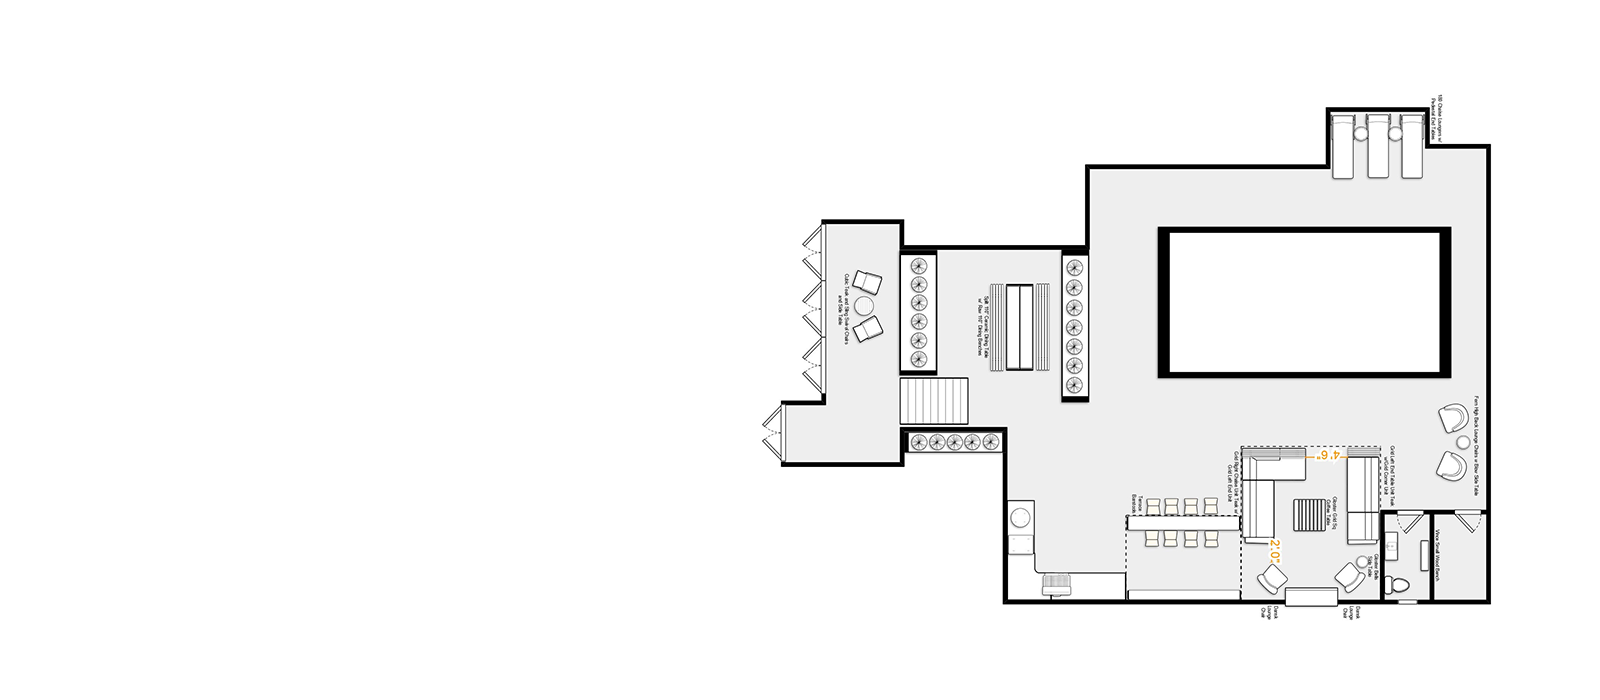 cad drawing of home with furniture